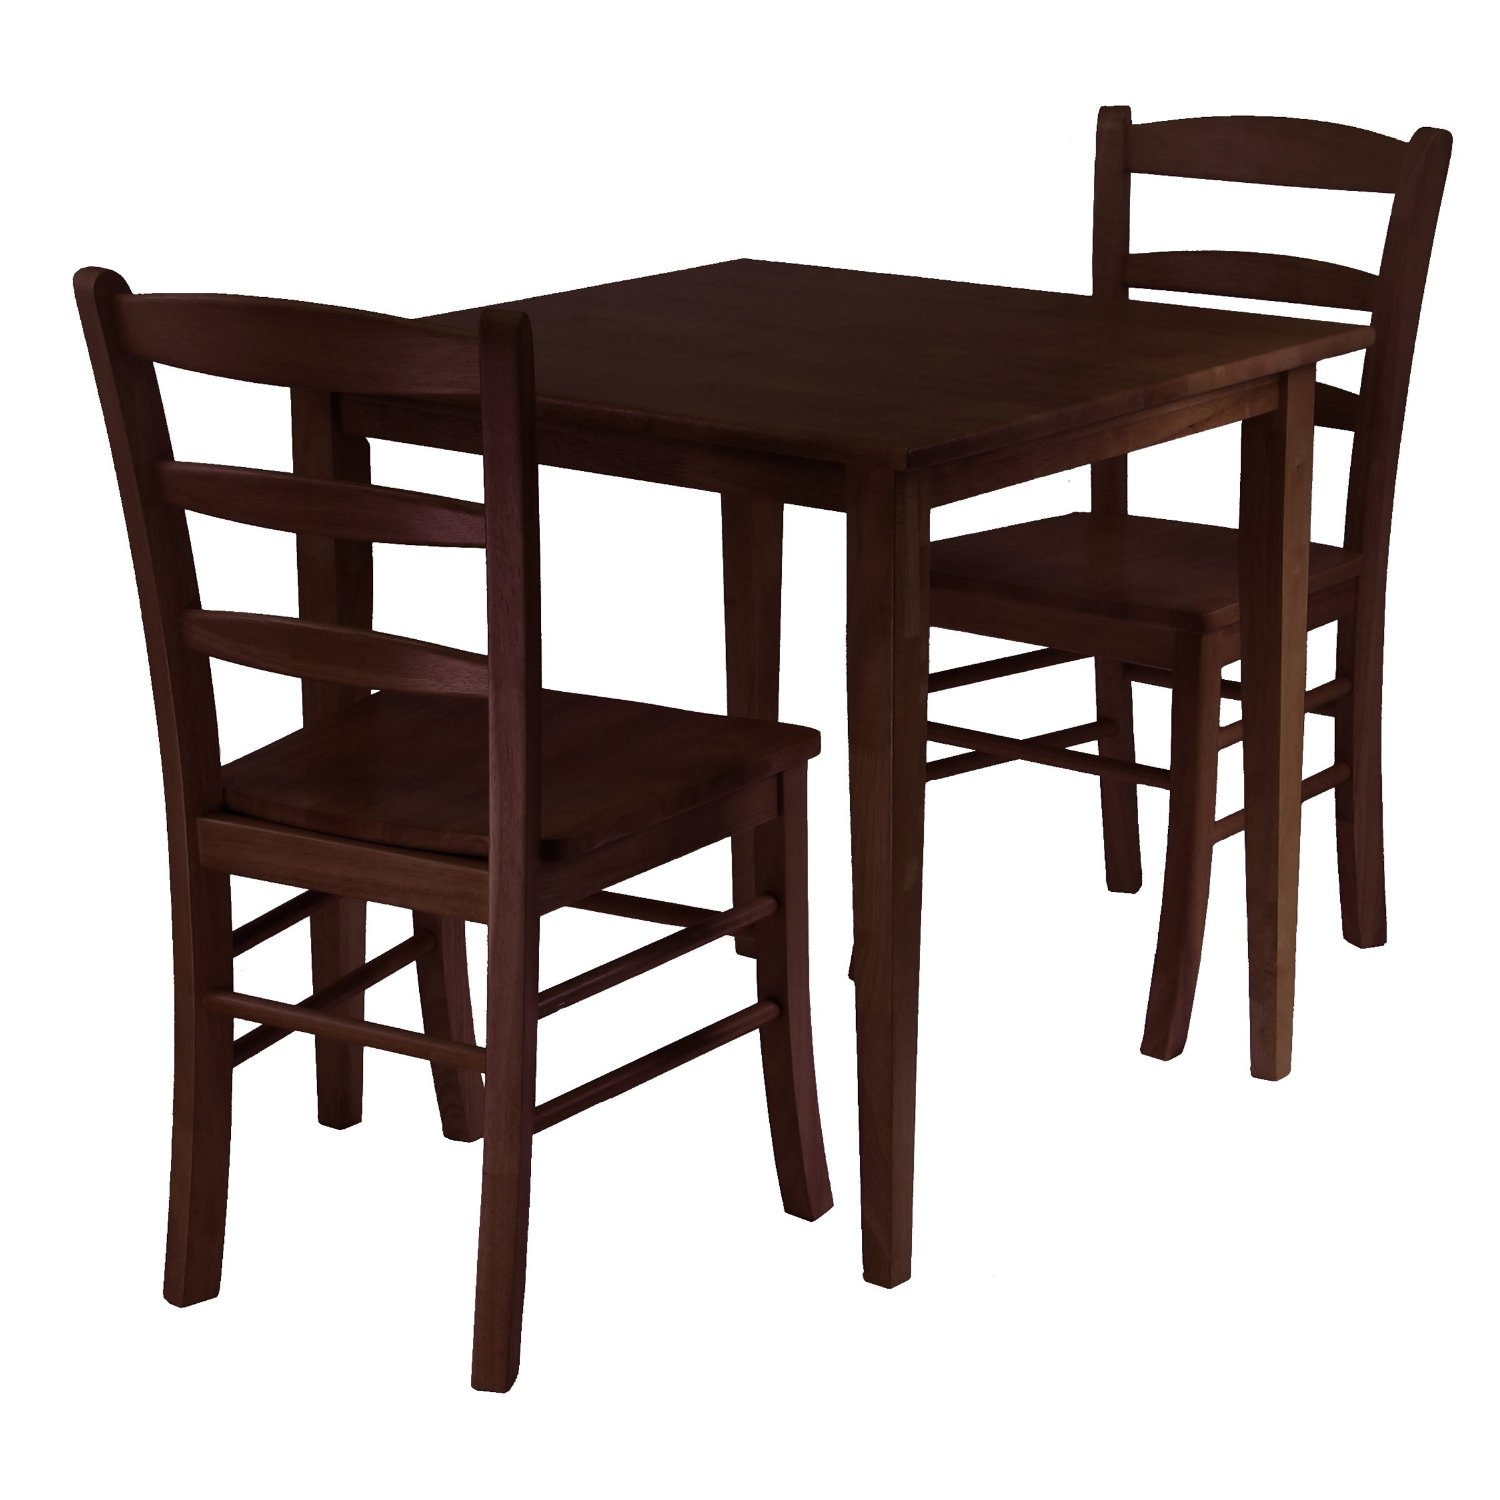 Small dinette set design homesfeed for Small dining set for 2